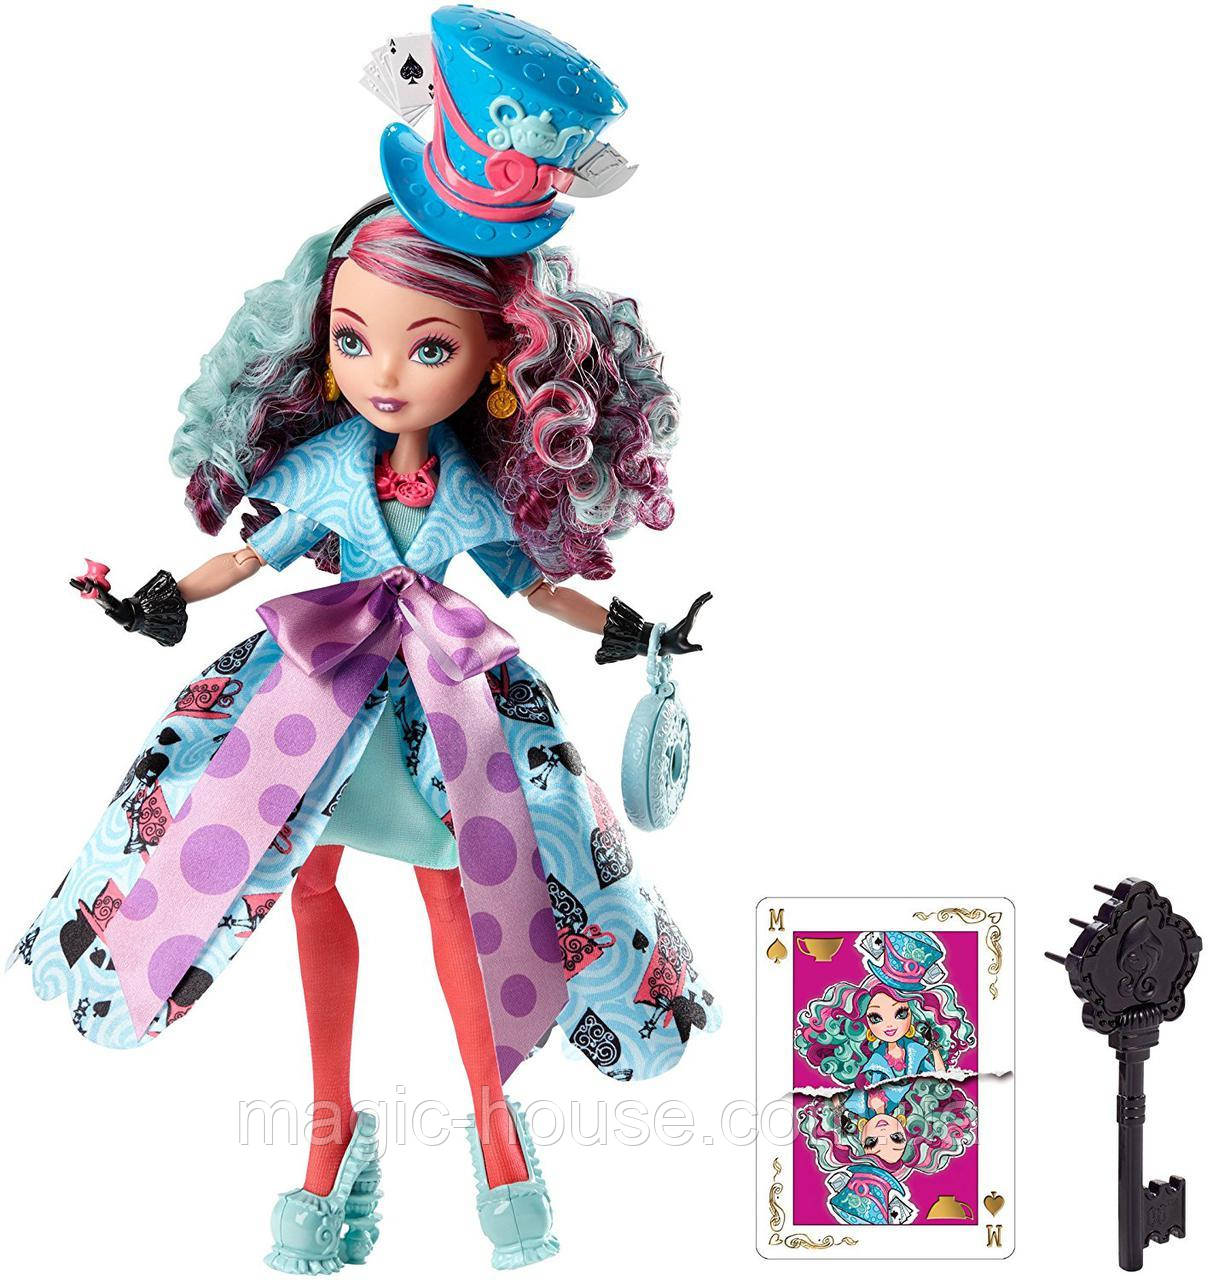 Мэдлин Хаттер Кукла Эвер Афтер Хай Путь в Страну Чудес Ever After High Way Too Wonderland Madeline Hatter Doll